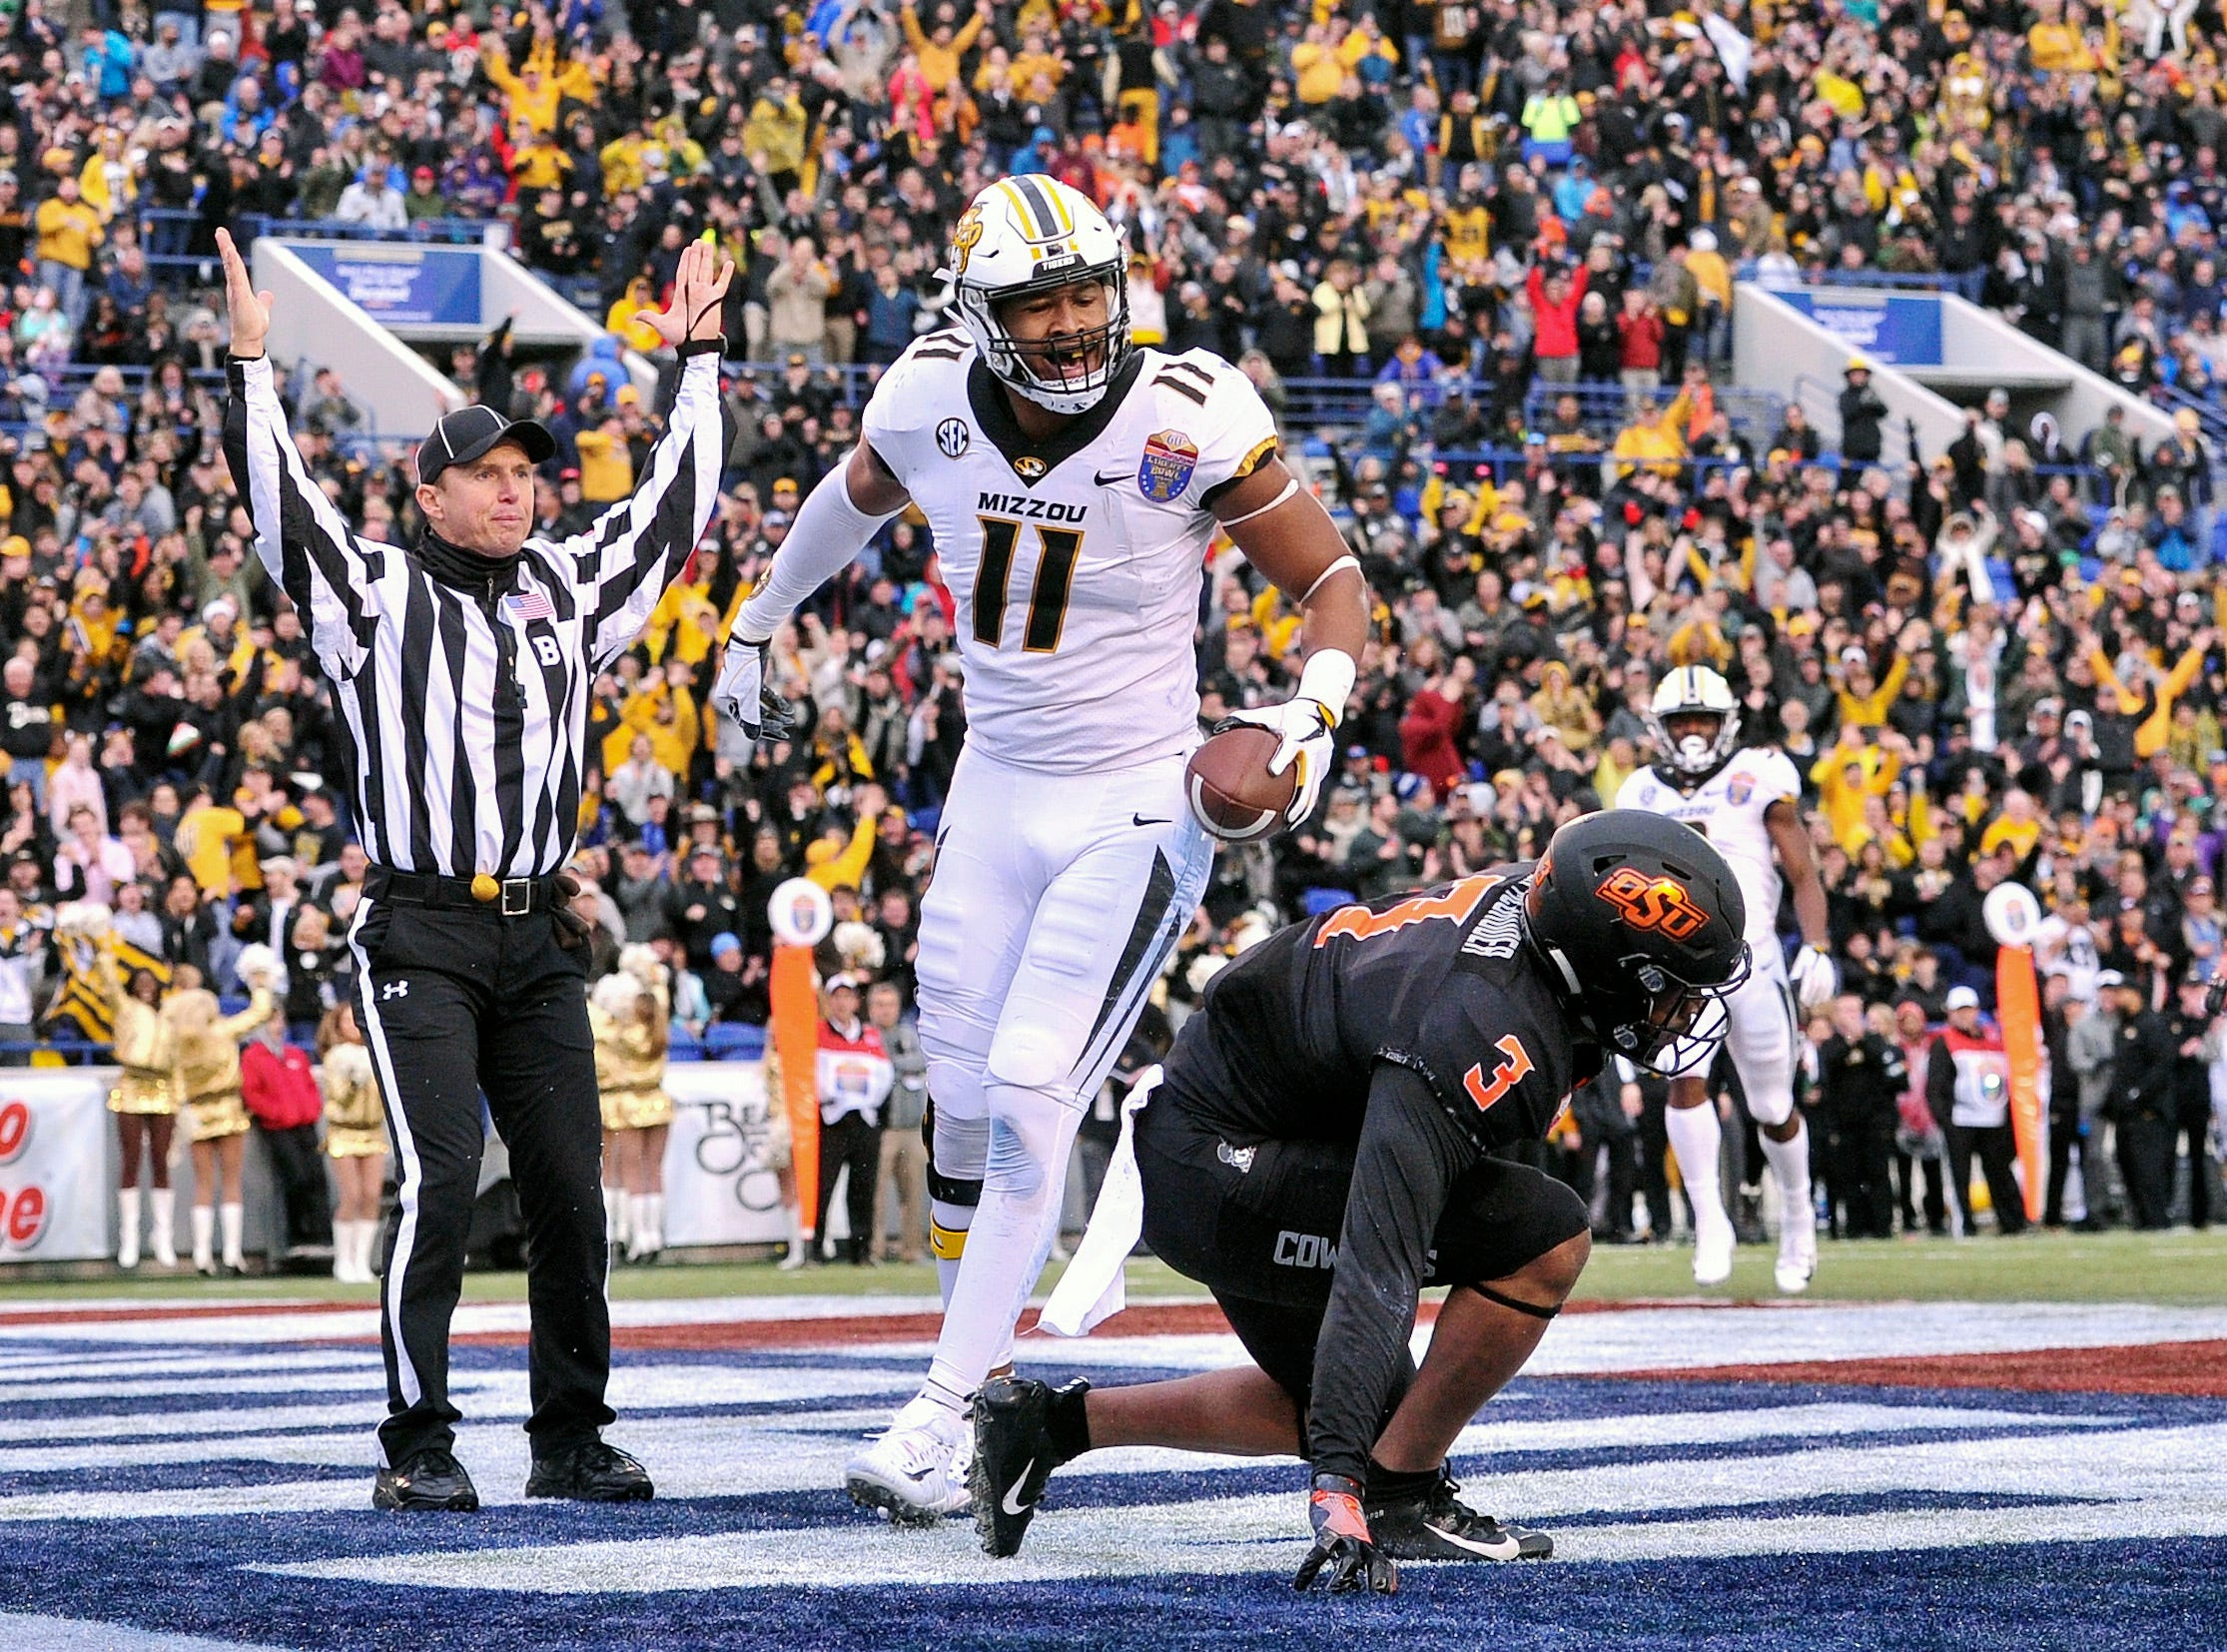 Missouri Tigers tight end Kendall Blanton (11) celebrates during the first half against the Oklahoma State Cowboys in the Liberty Bowl.